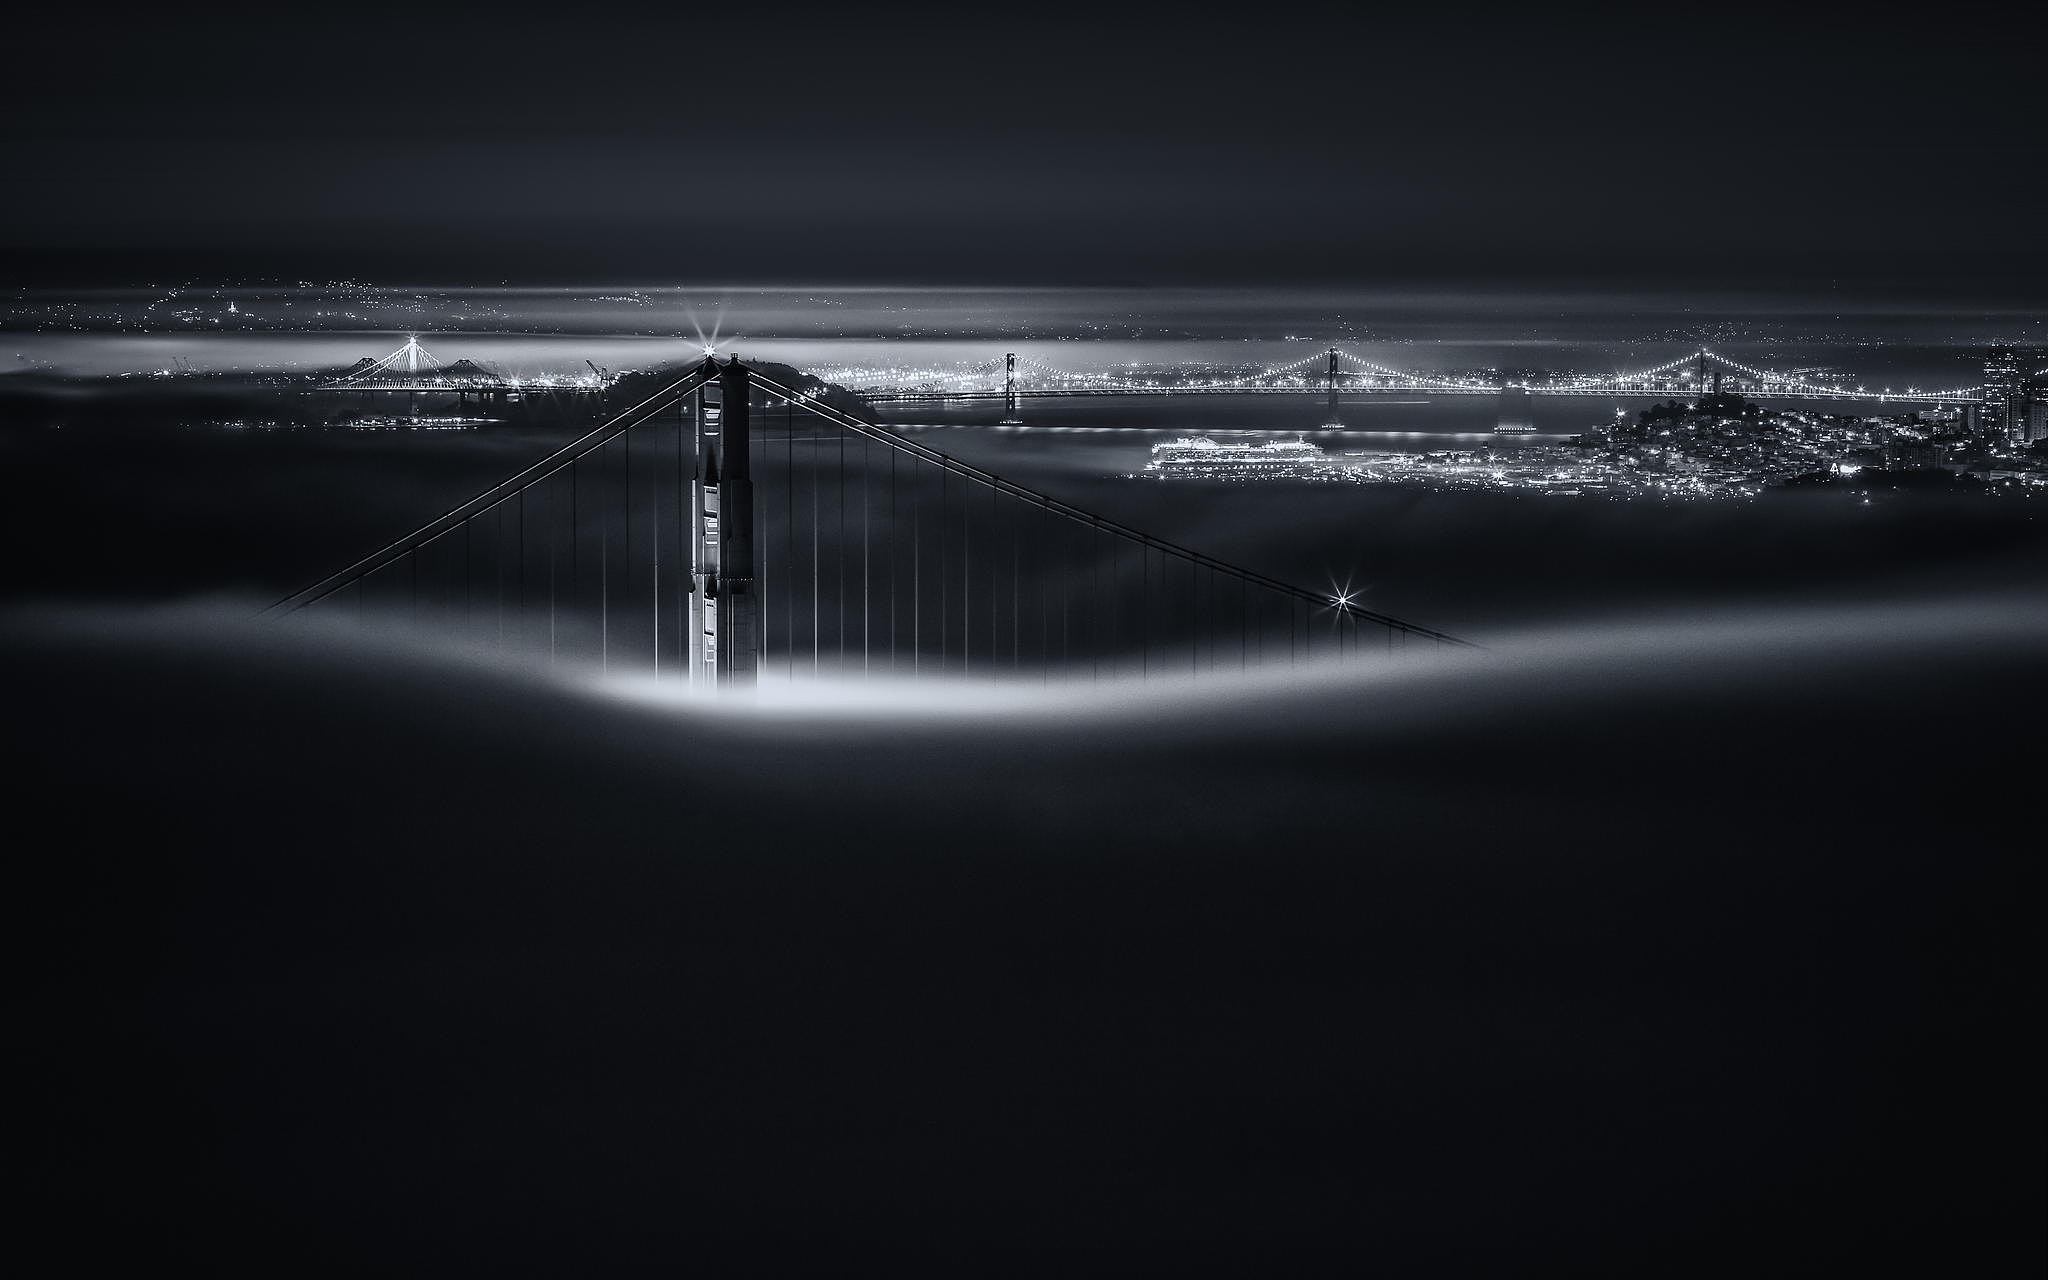 Dark and Gripping Time-Lapse Captures San Francisco Like You've Never Seen it Before